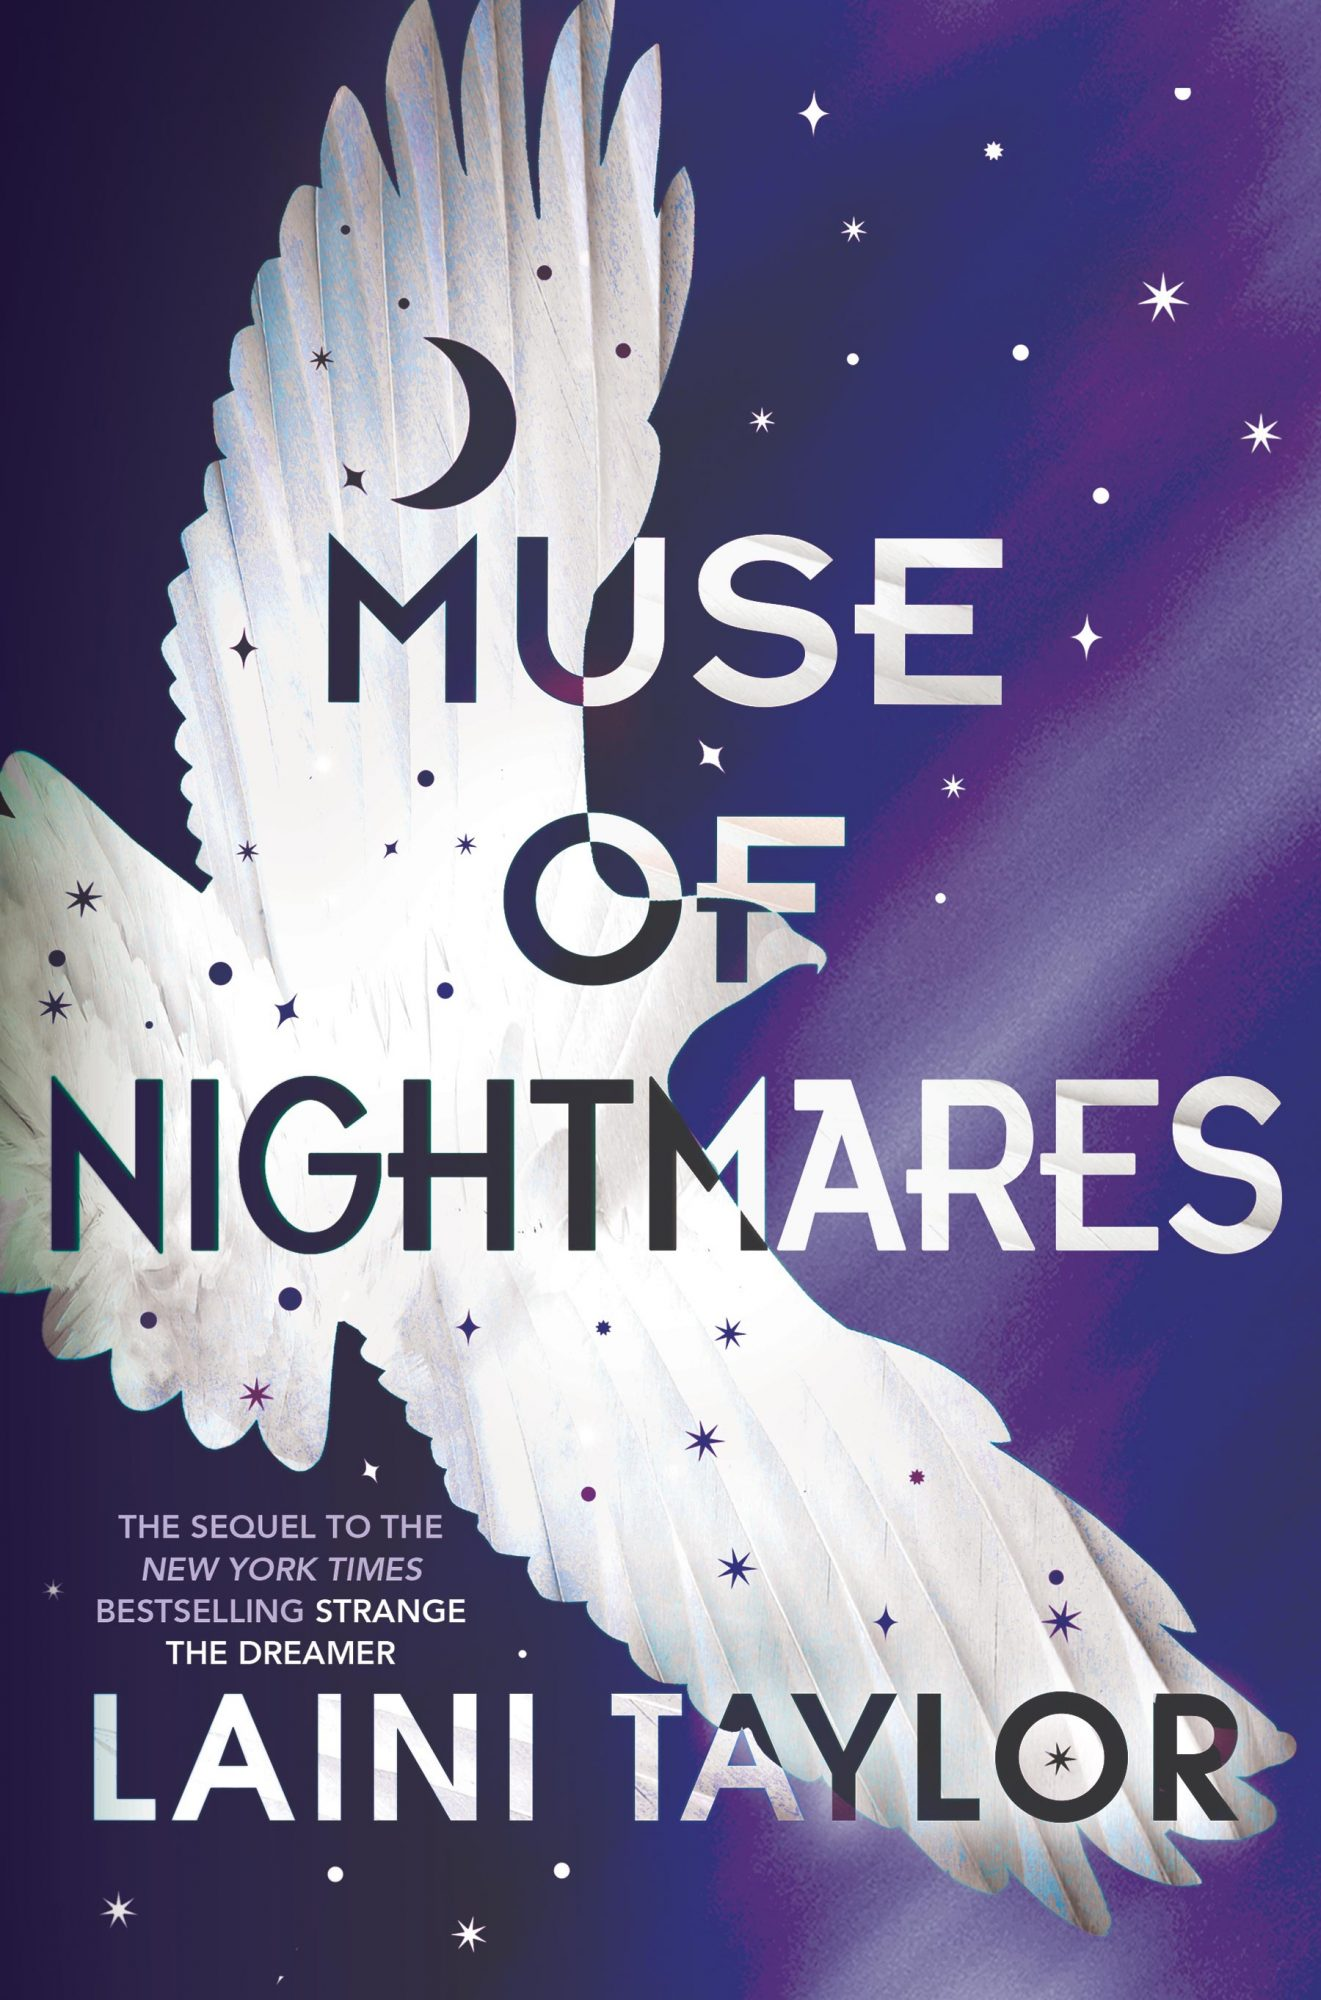 Muse of Nightmaresby Laini Taylor CR: Little, Brown Books for Young Readers